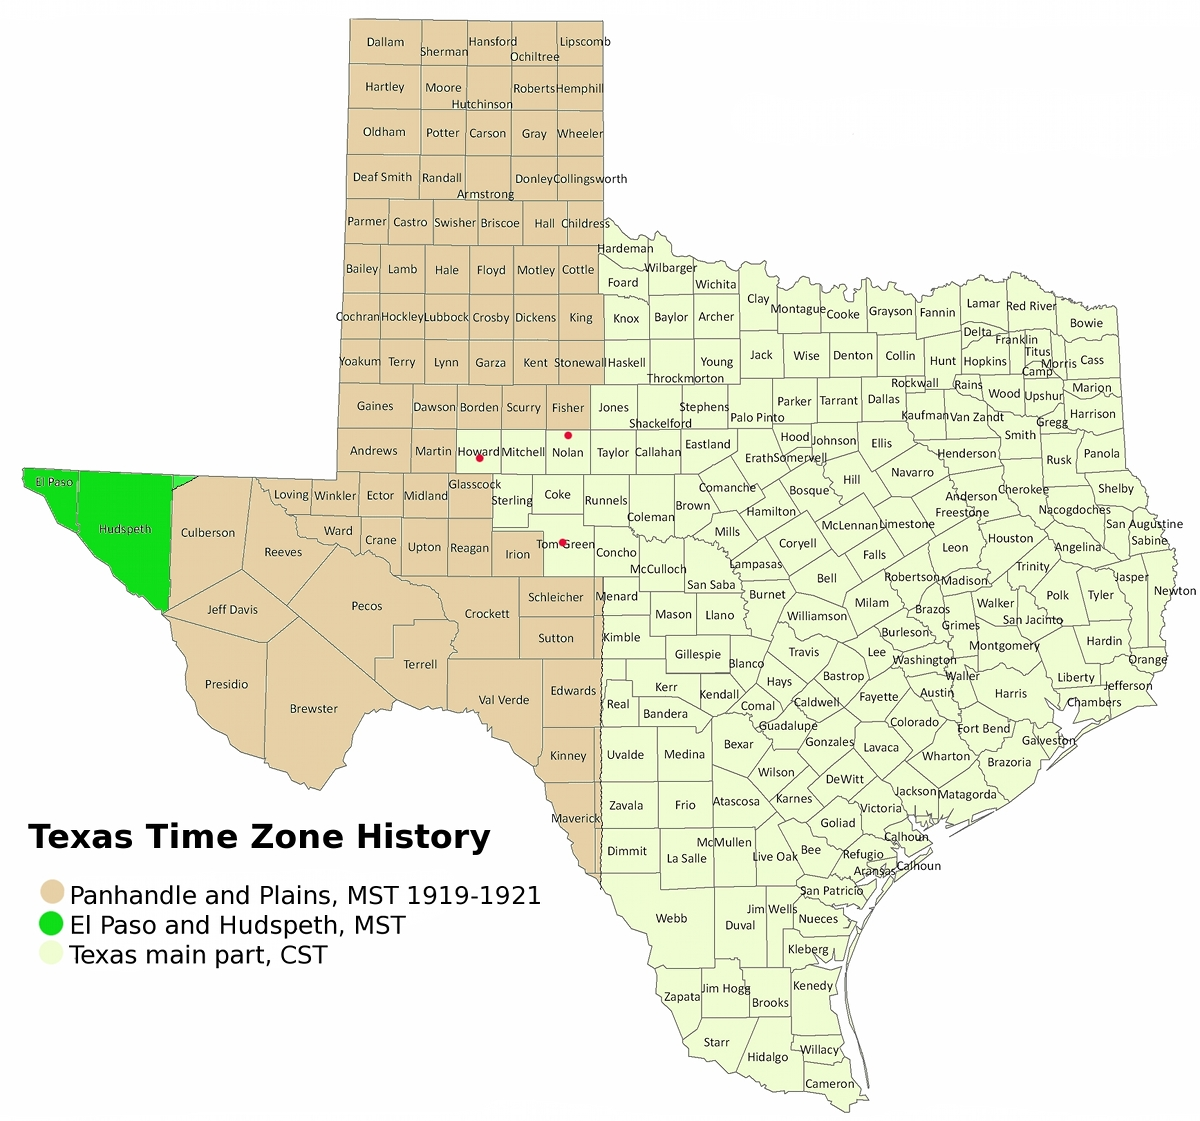 counties in texas map with File Texas Timezones on Map Of Lower Peninsula Of Michigan moreover Louisiana as well Overview together with Serengeti Plain Map besides Eagle Ford Shale.